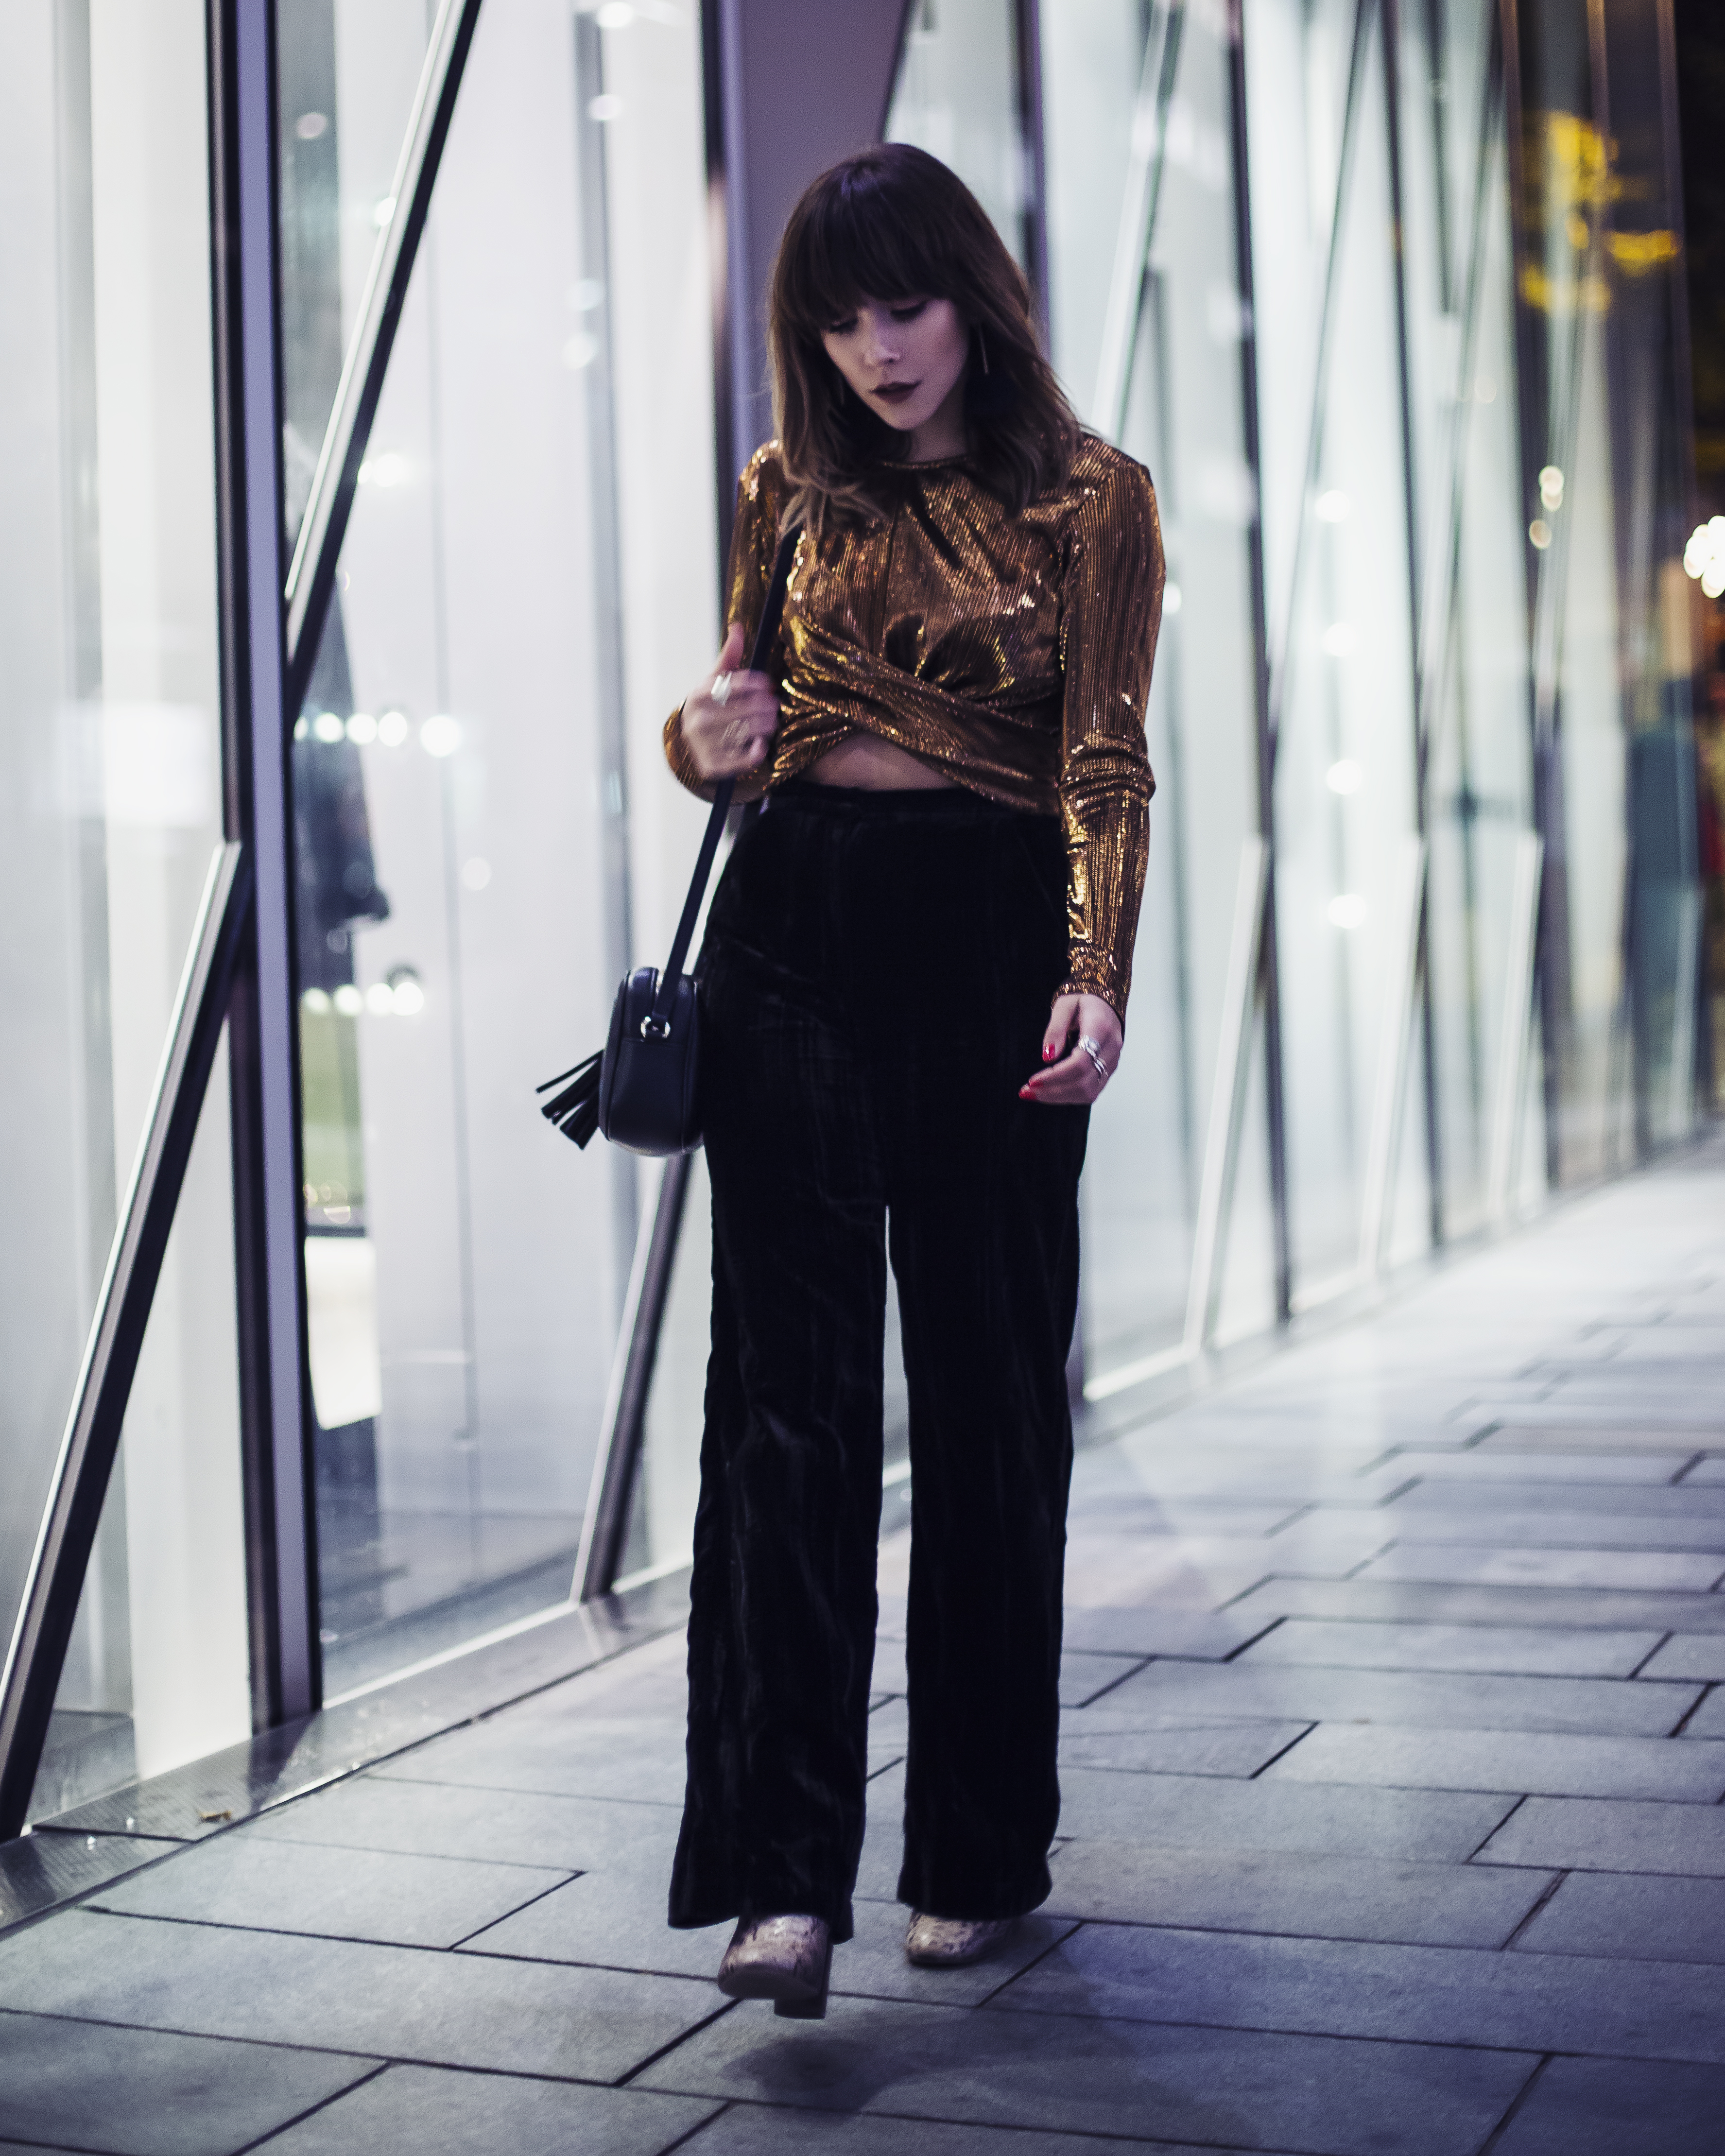 MEGAN ELLABY WEARS METALLIC TOP AND VELVET WIDE LEG TROUSERS AT PARTY SEASON